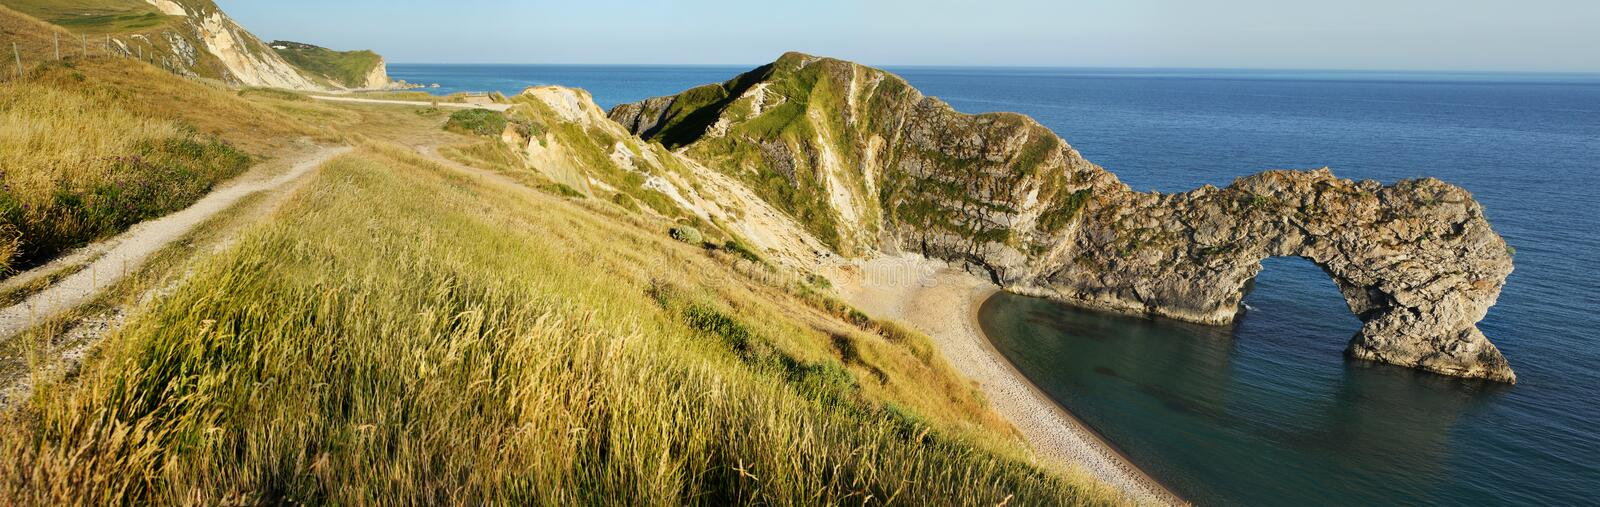 Panoramic View of Durdle Door in United Kingdom. royalty free stock photos